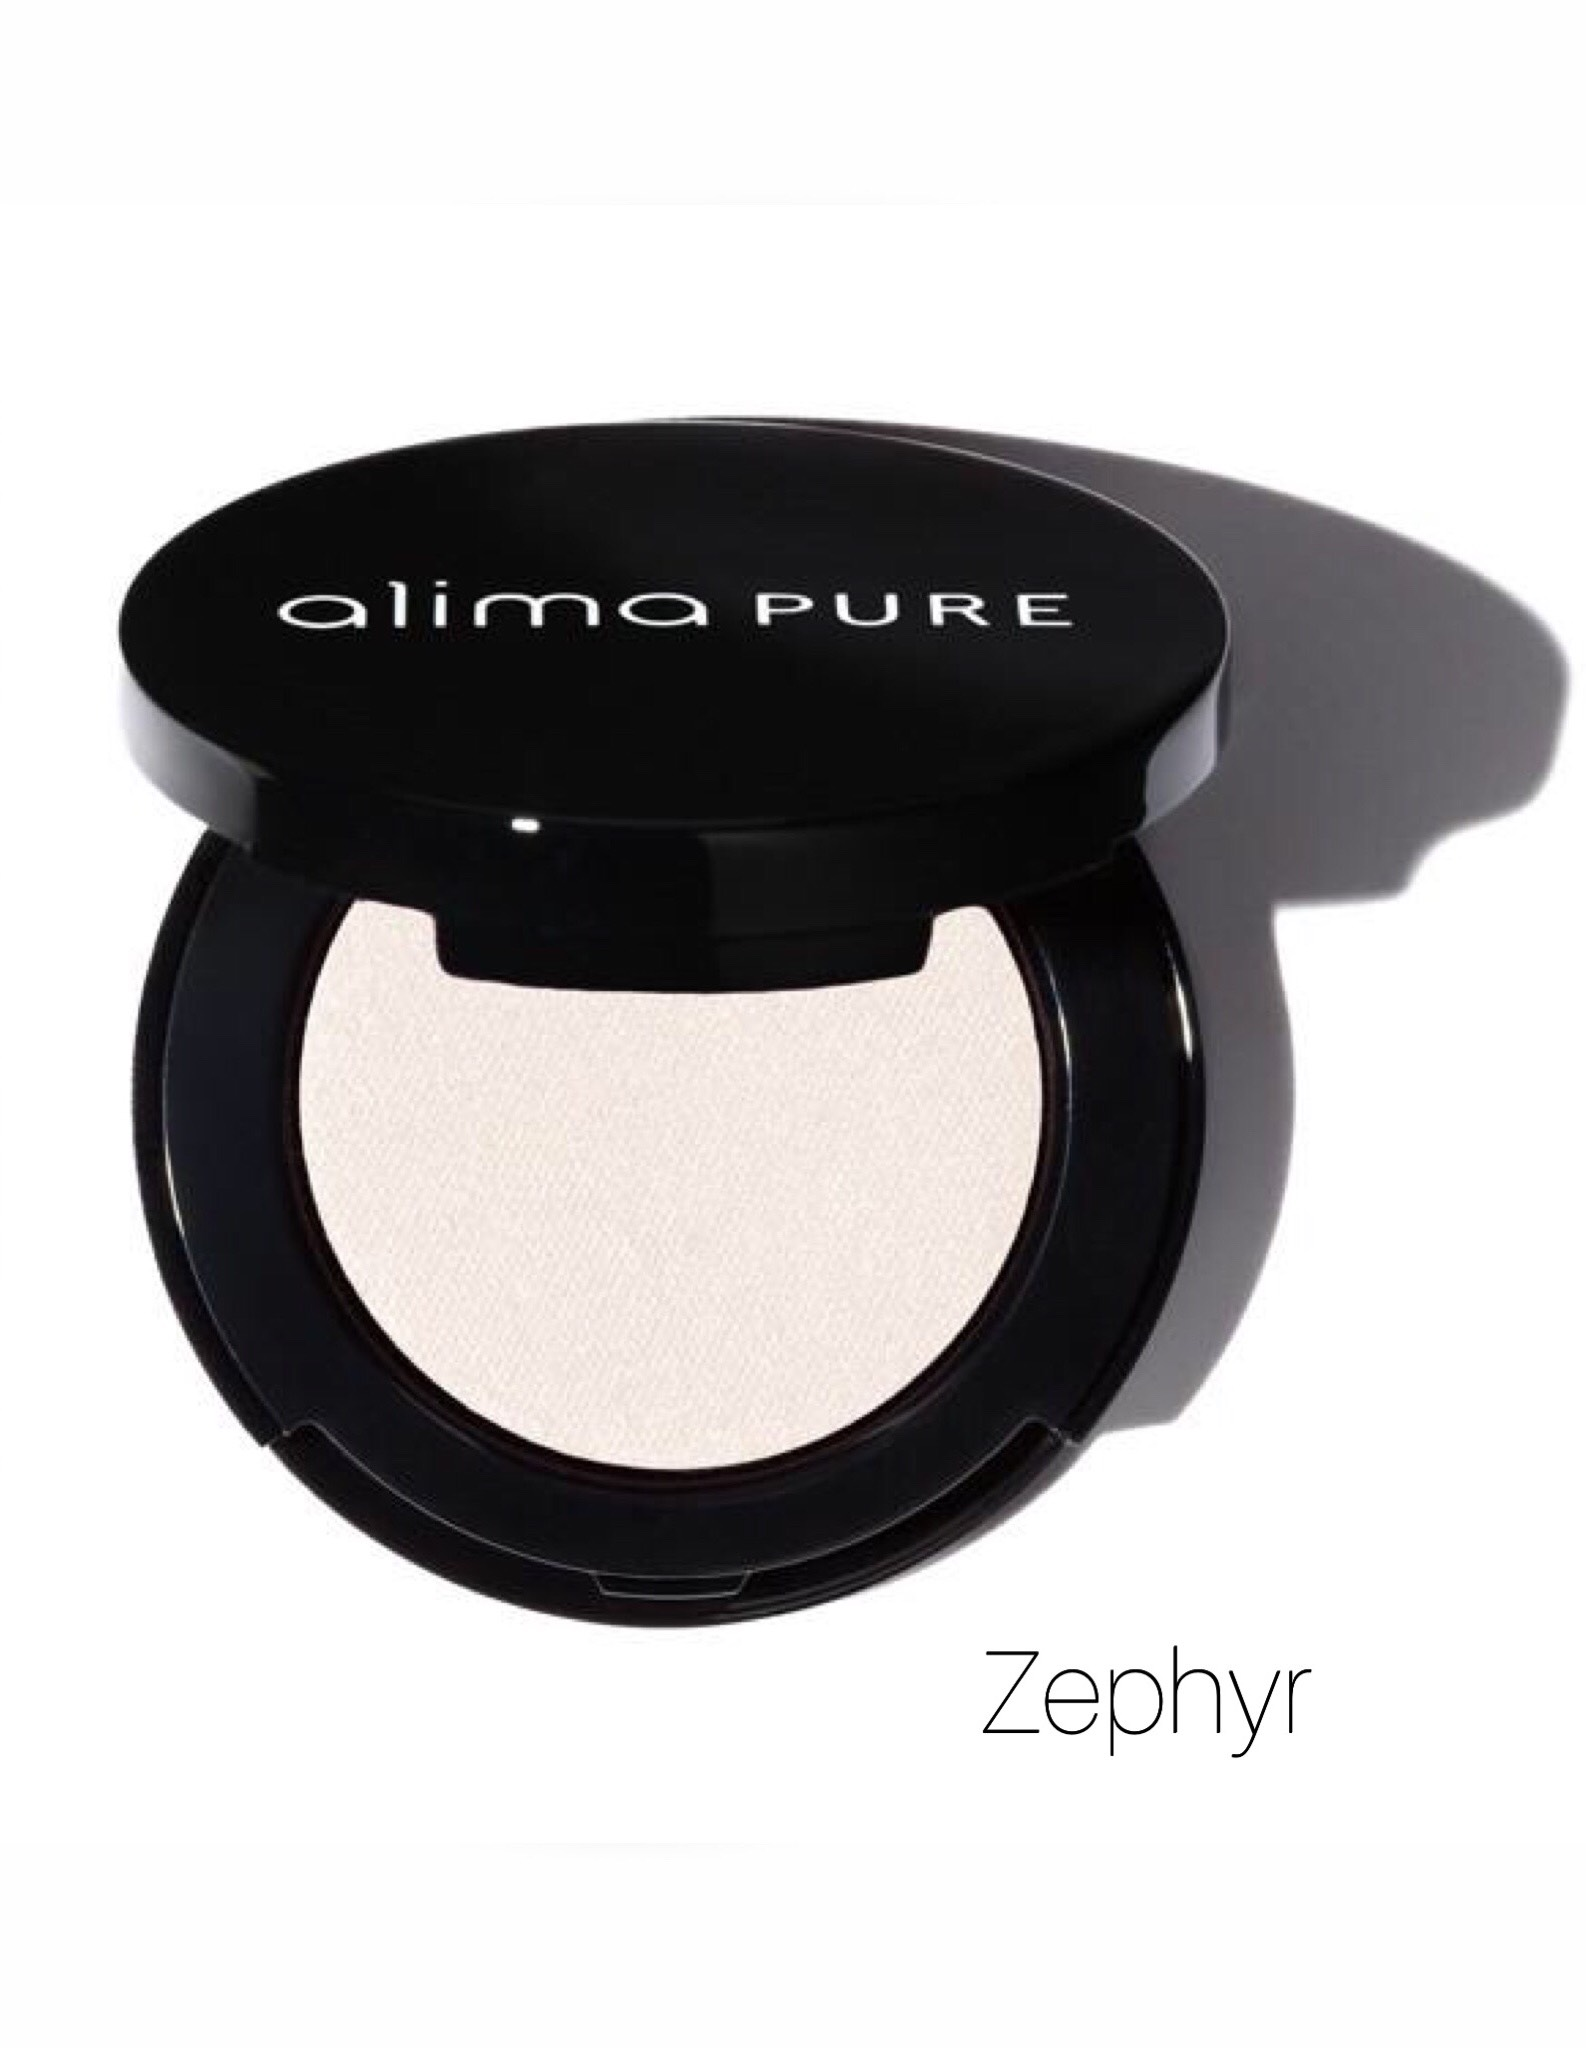 alima PURE Pressed Eyeshadow with Compact - 2